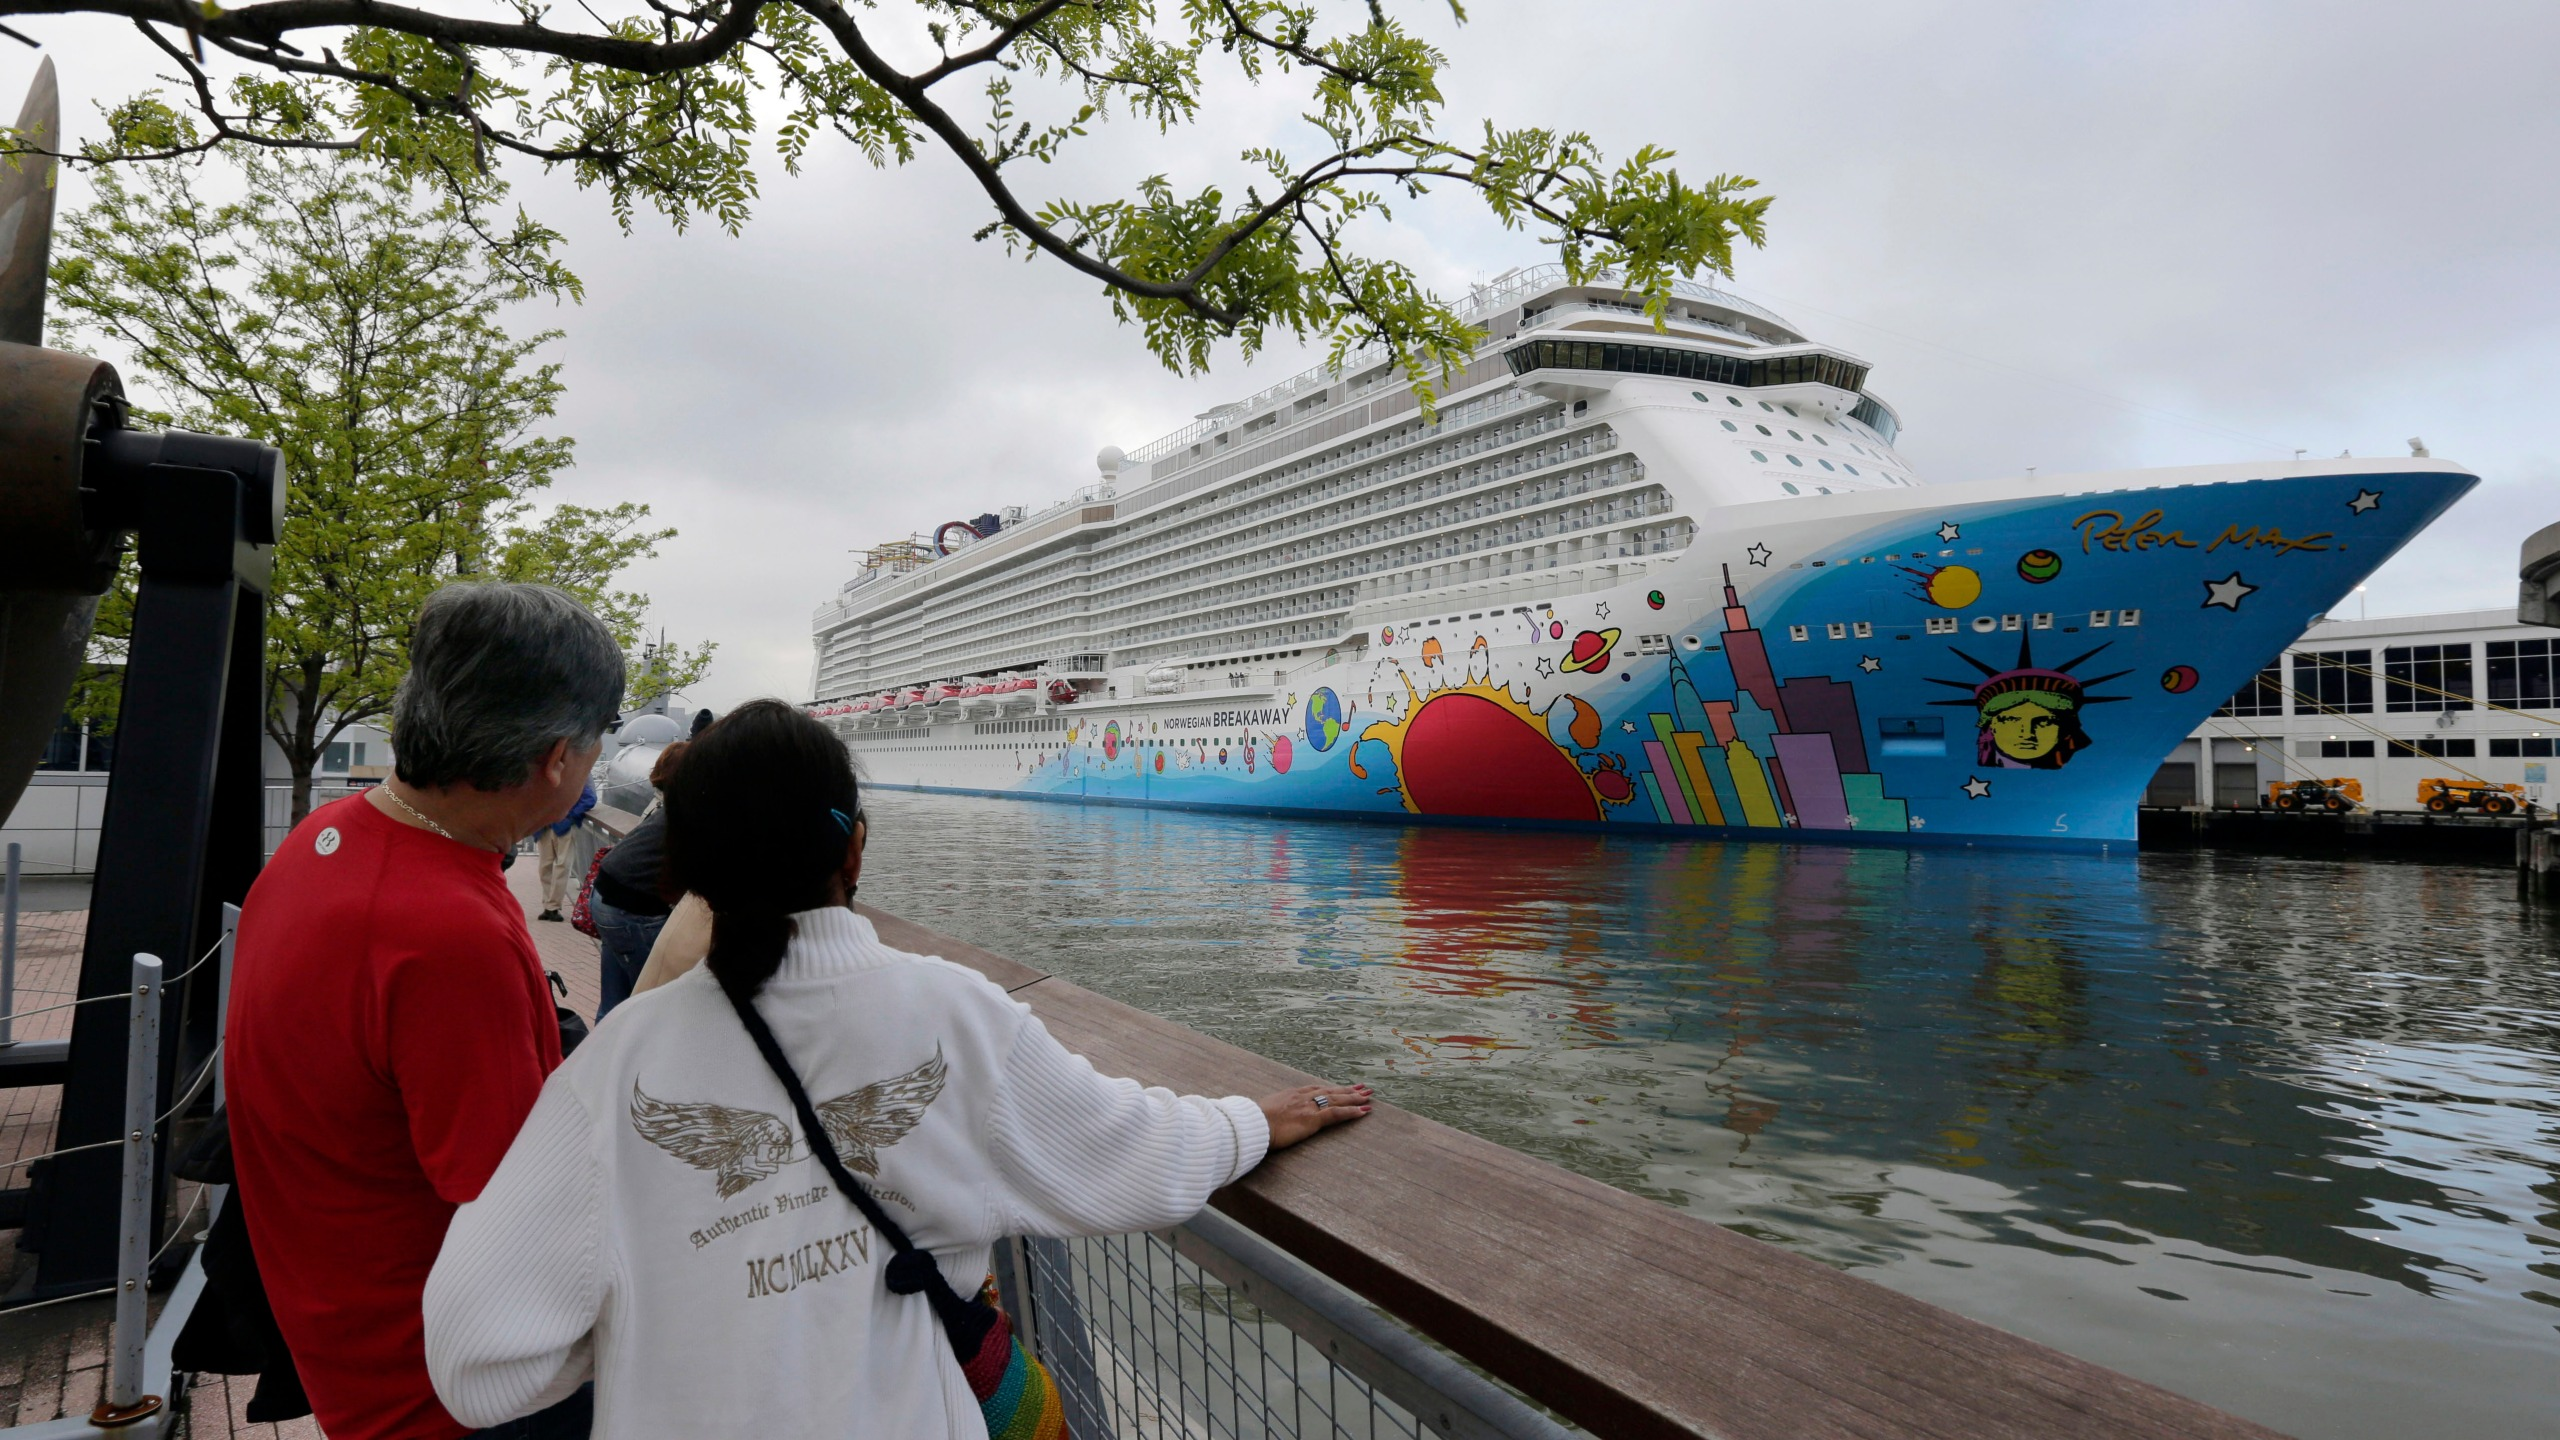 In this May 8, 2013, file photo, people pause to look at Norwegian Cruise Line's ship, Norwegian Breakaway, on the Hudson River, in New York. On Monday, April 5, 2021, Norwegian Cruise Line's parent company asked the Centers for Disease Control and Prevention for permission to resume cruises from U.S. ports on July 4 by requiring passengers and crew members to be vaccinated against COVID-19 at least two weeks before the trip. (AP Photo/Richard Drew, File)